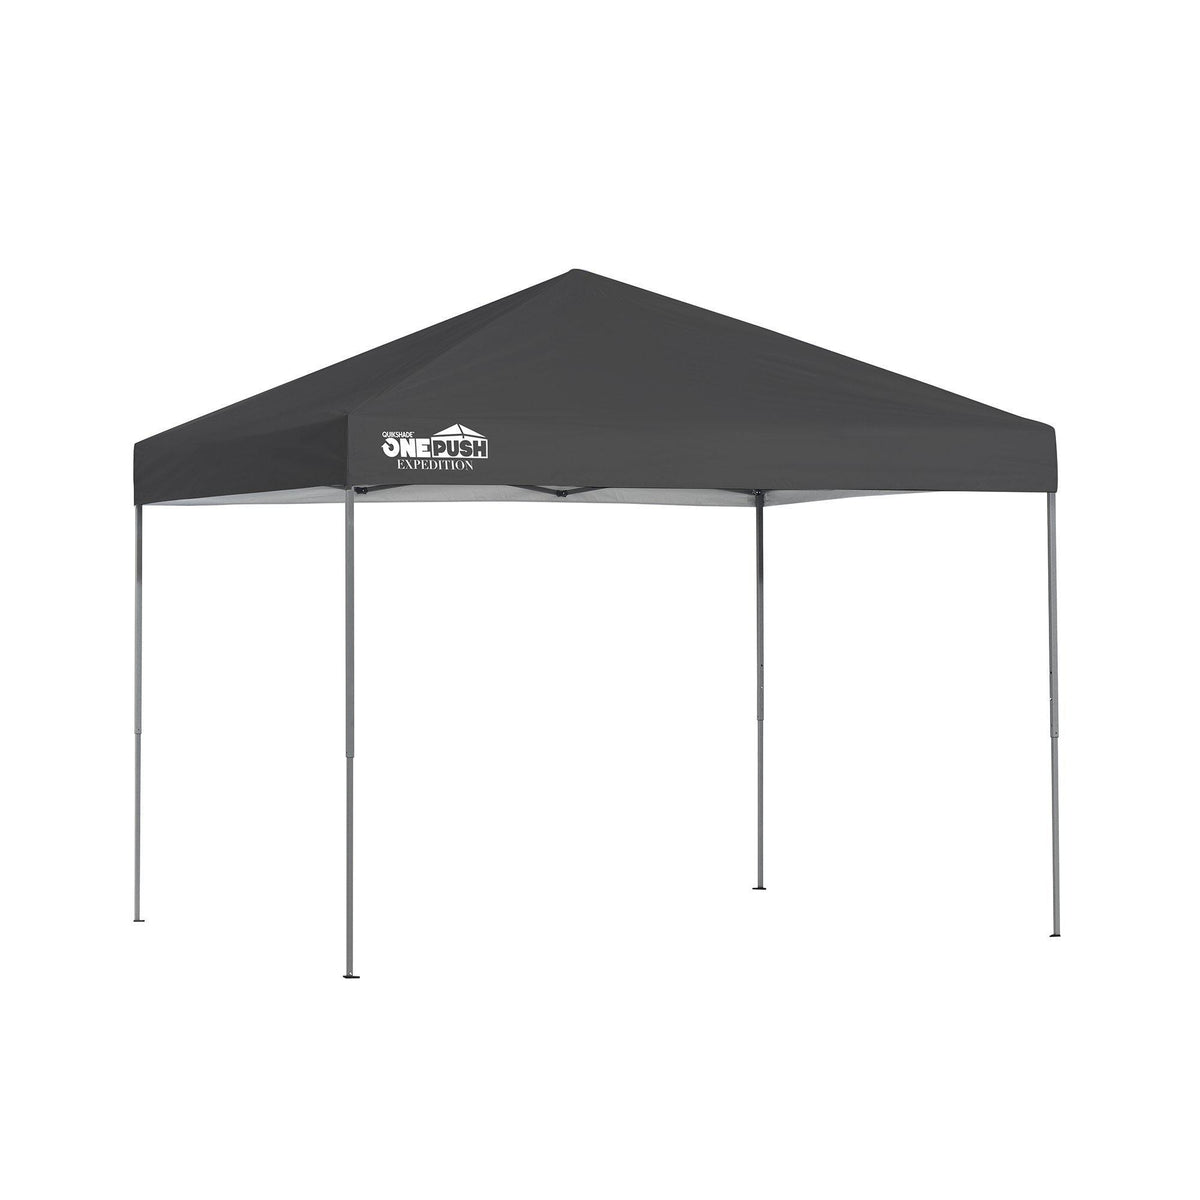 Quik Shade Expedition One Push 8 x 10 ft. Straight Leg Canopy, Charcoal